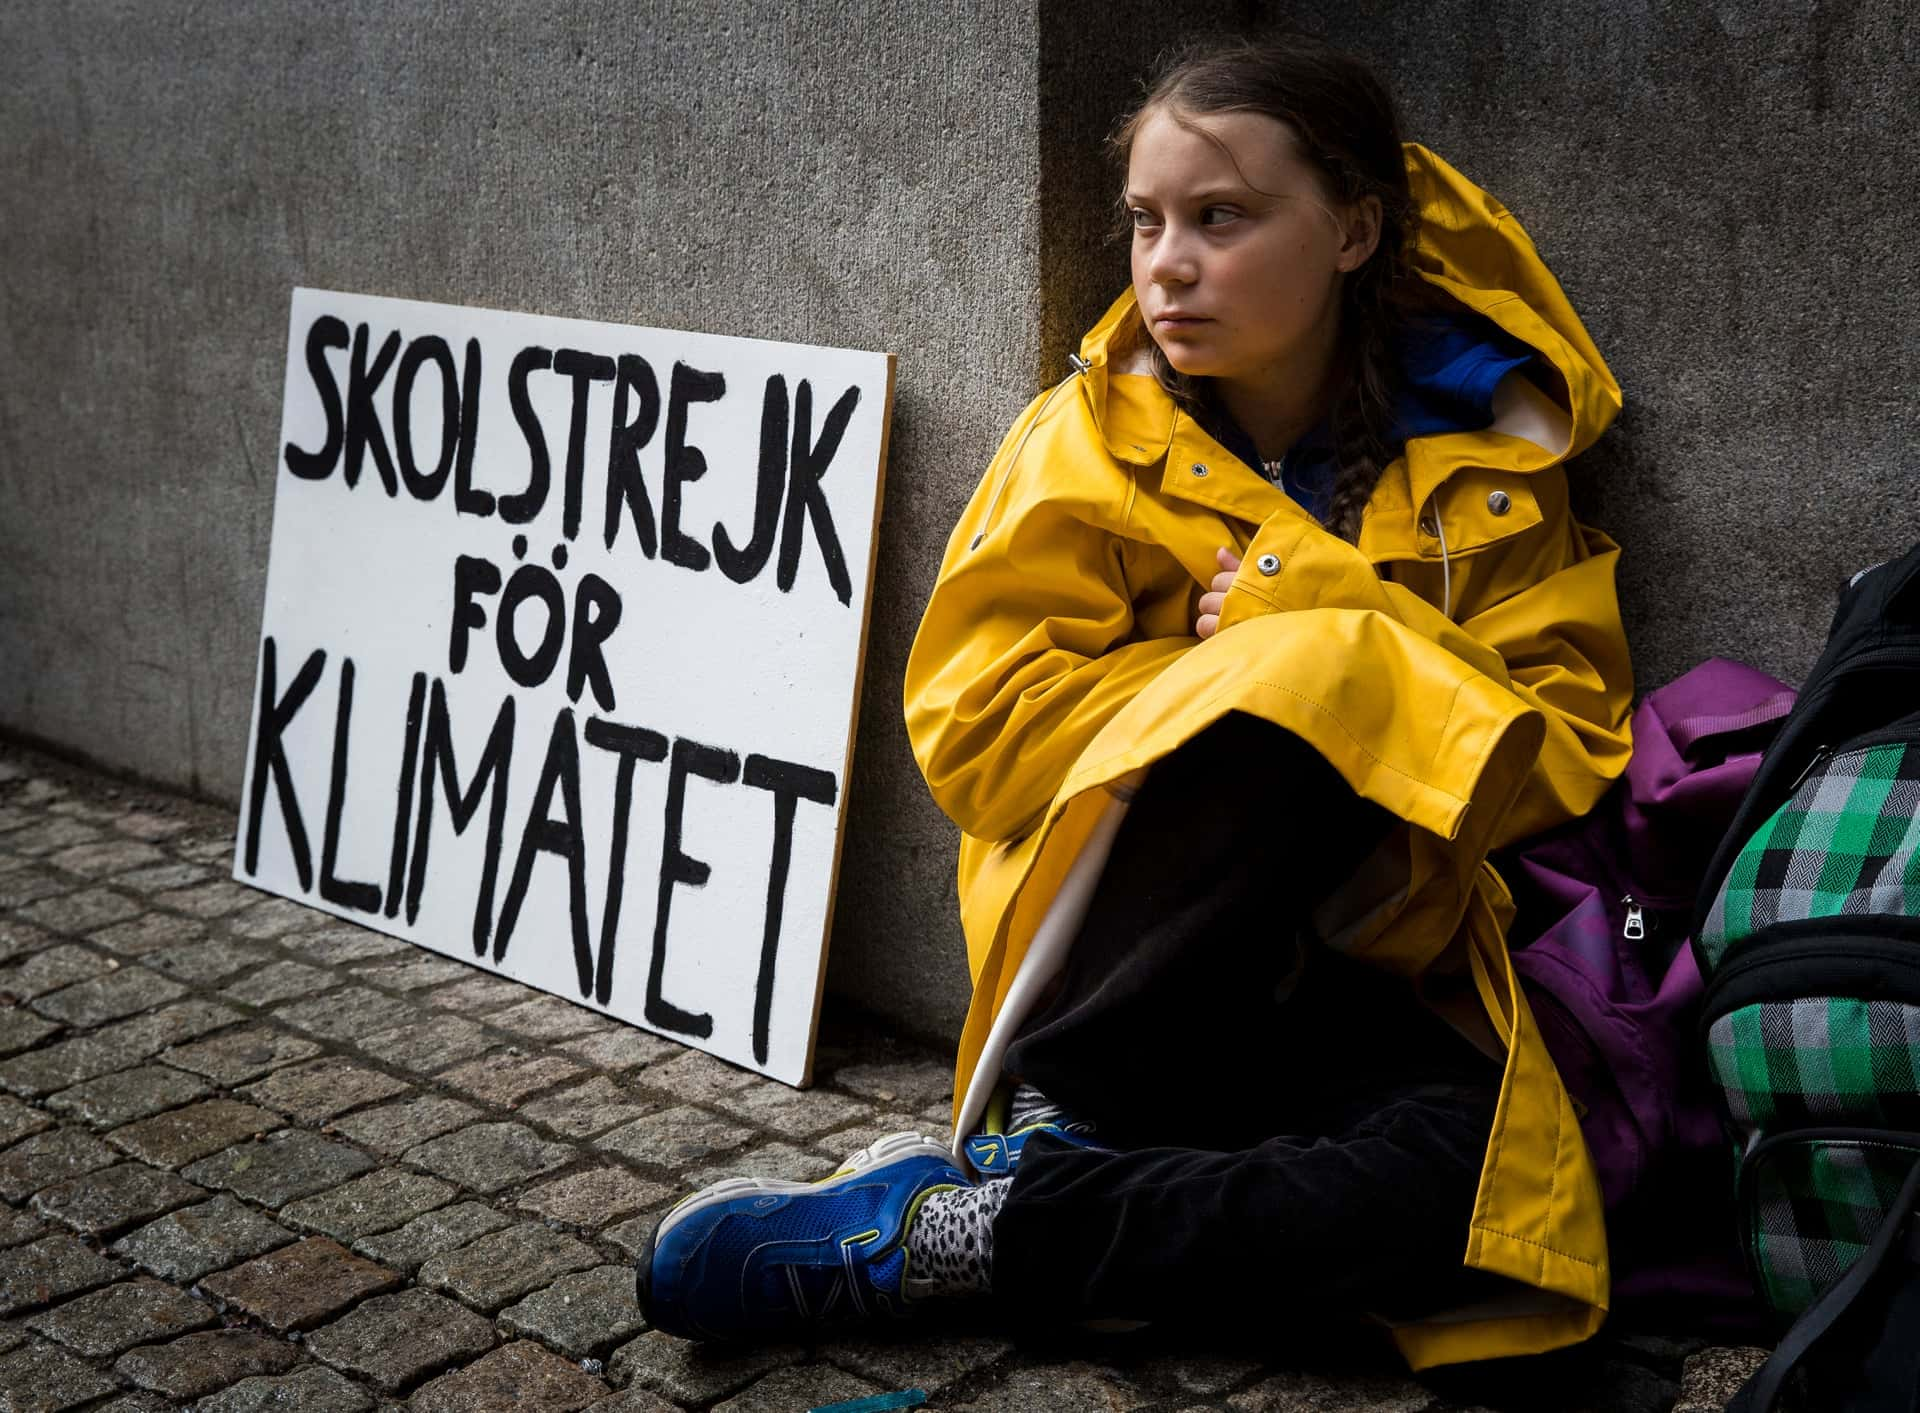 Greta protesting in front of her school